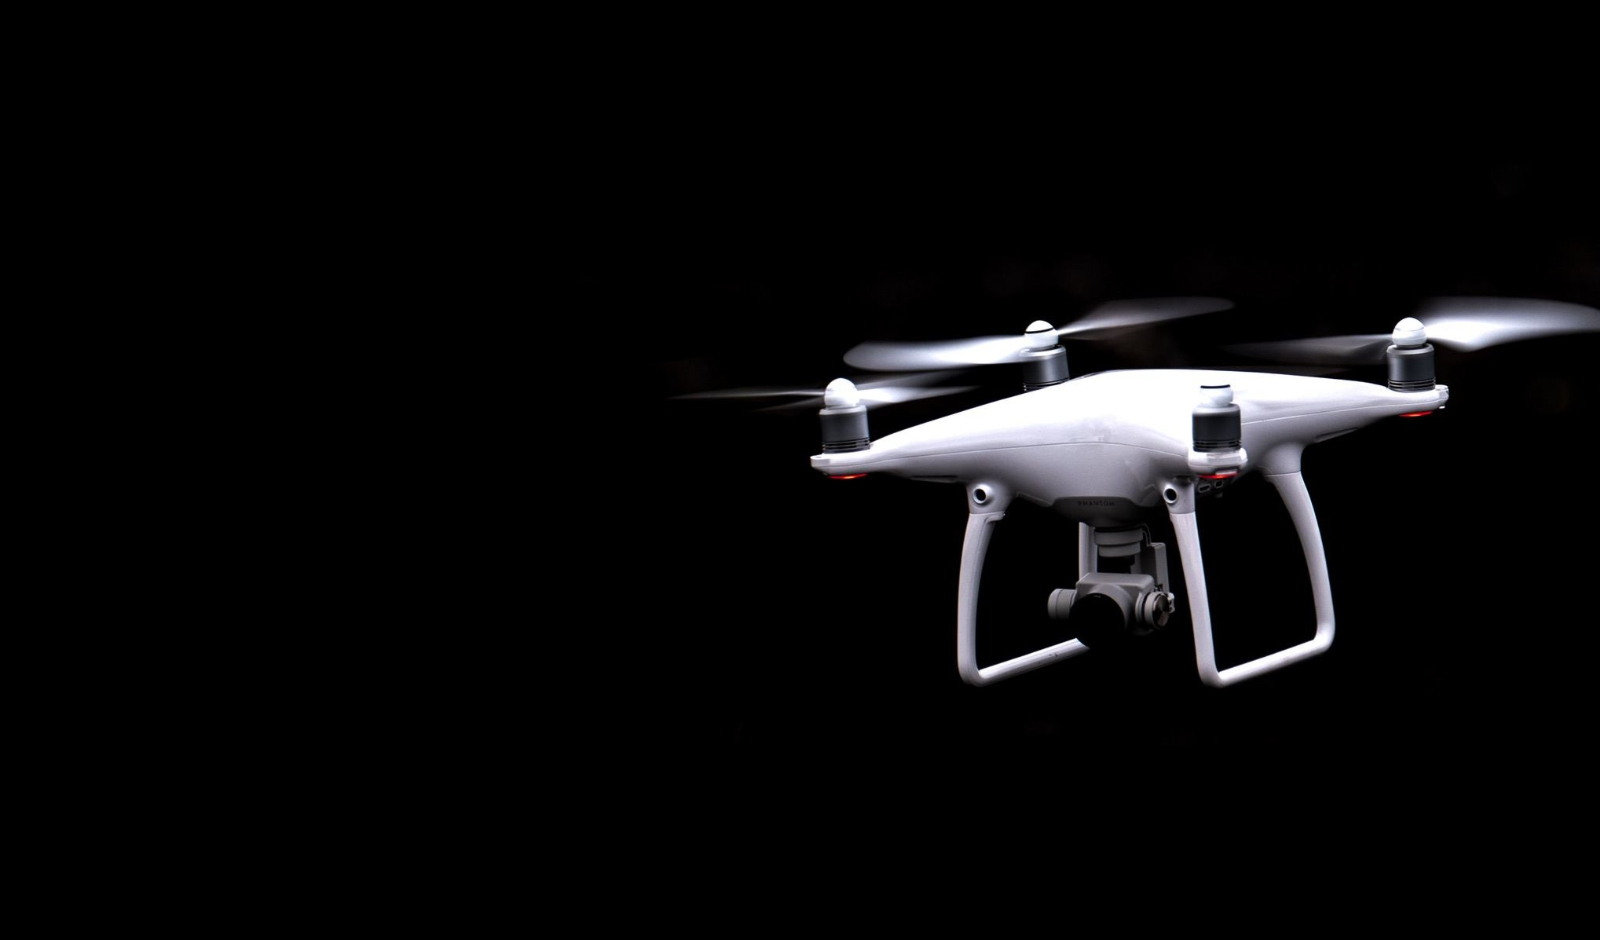 LEARN HOW TO FLY A DRONE